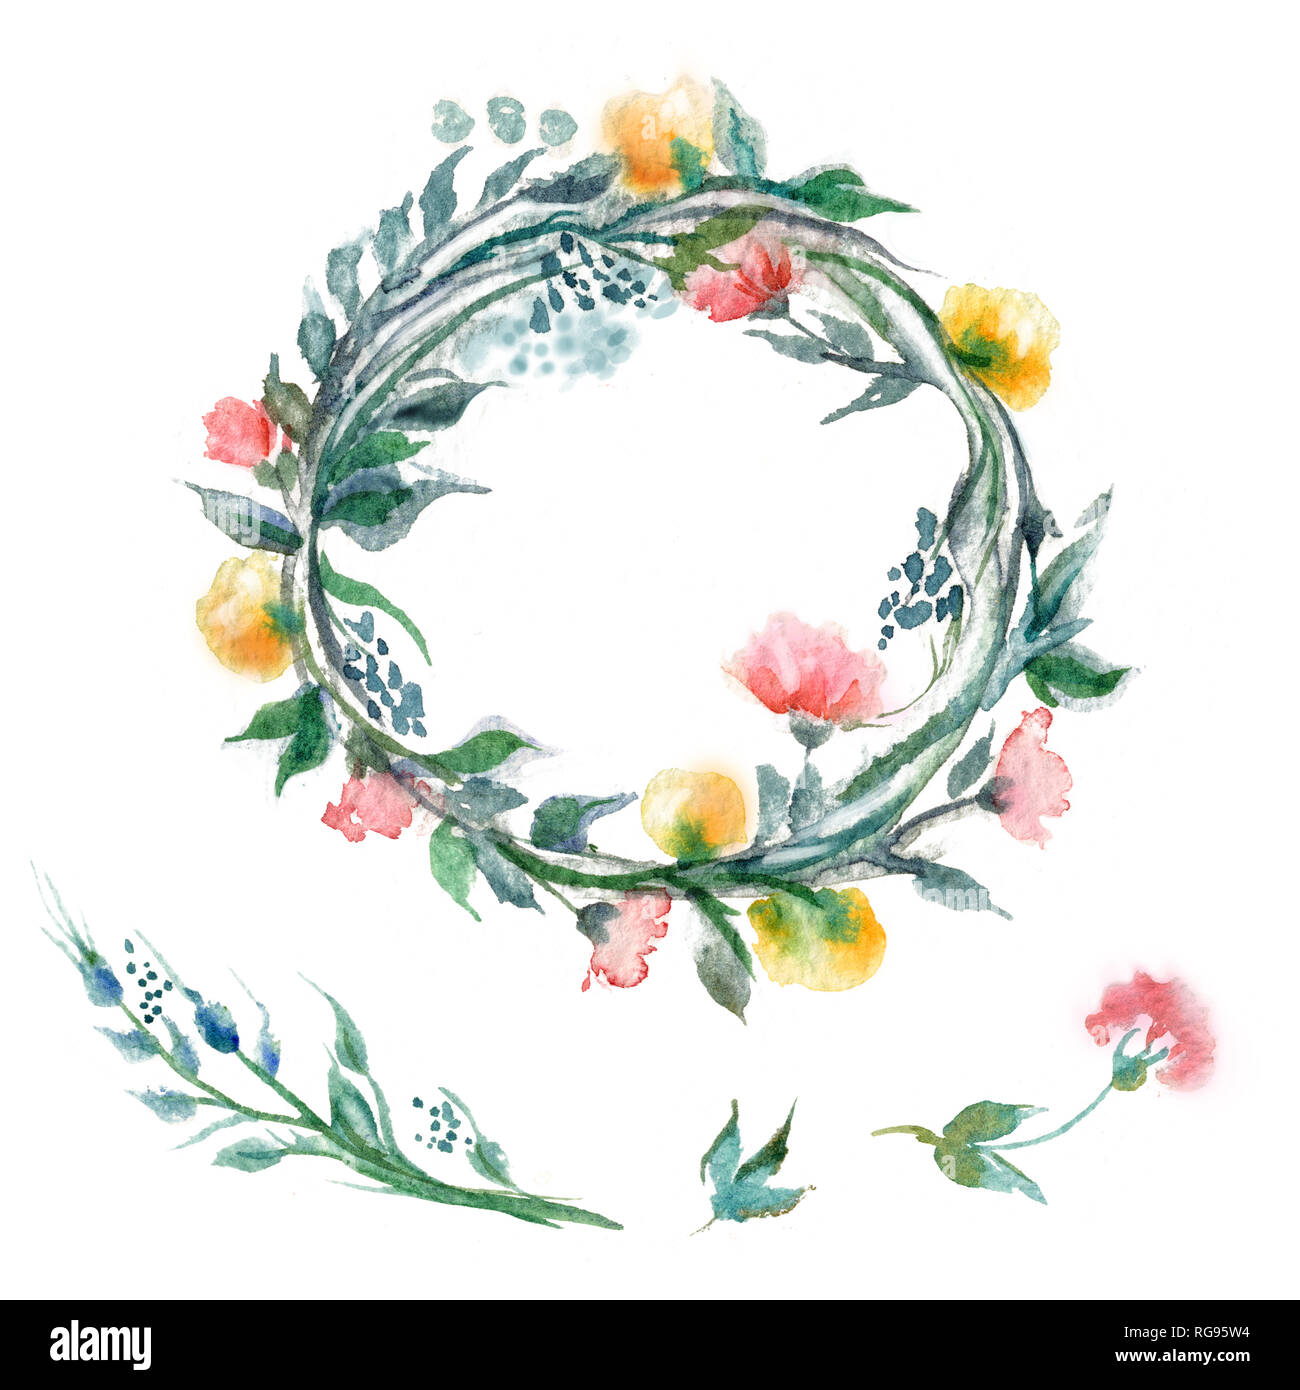 Watercolor ilustration of flower garland - Stock Image